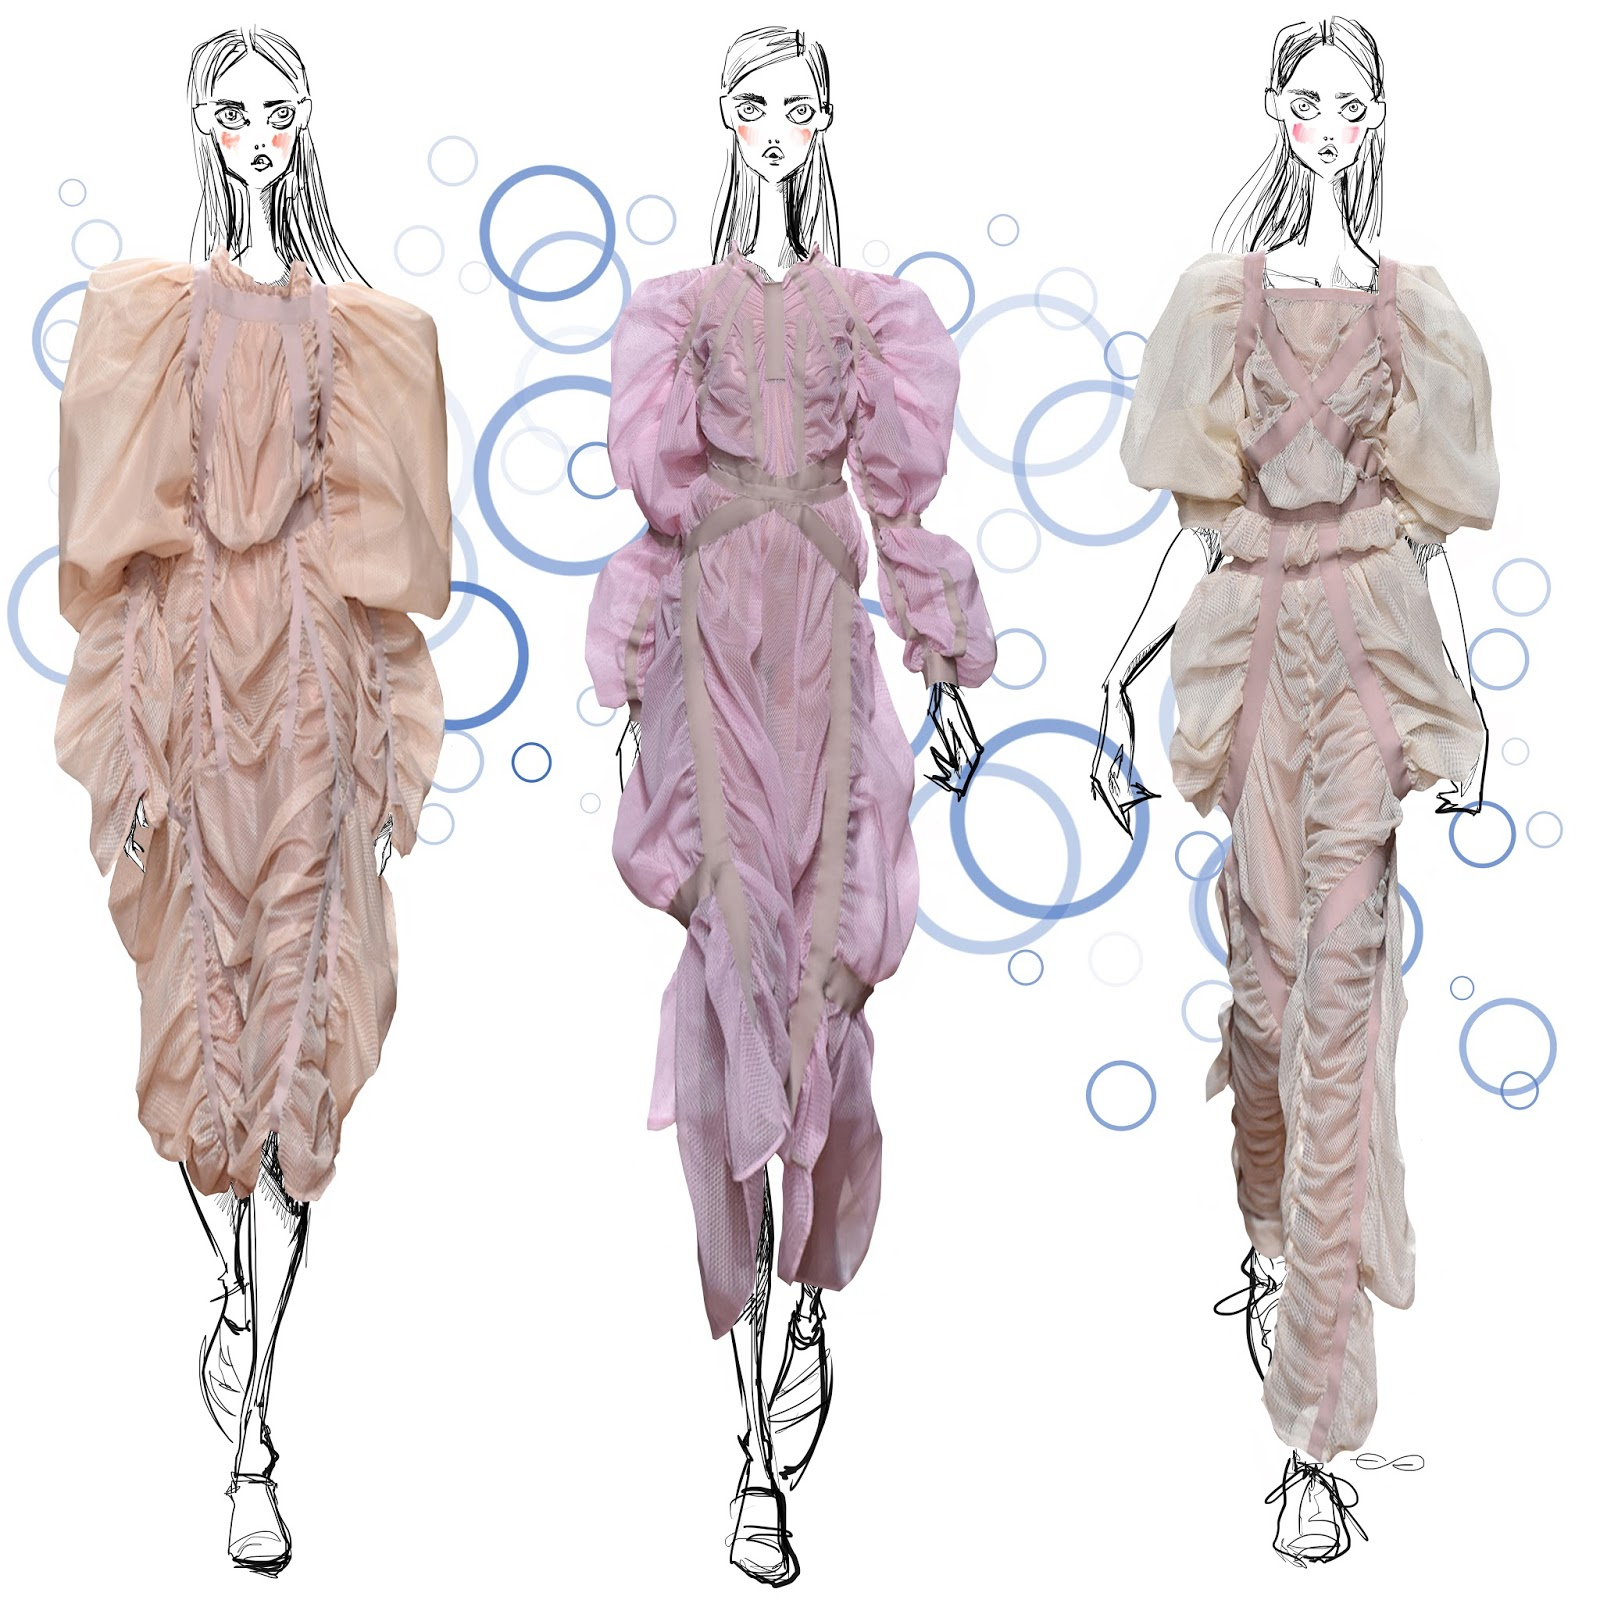 Watch - Sketches Outfit designs for summer video